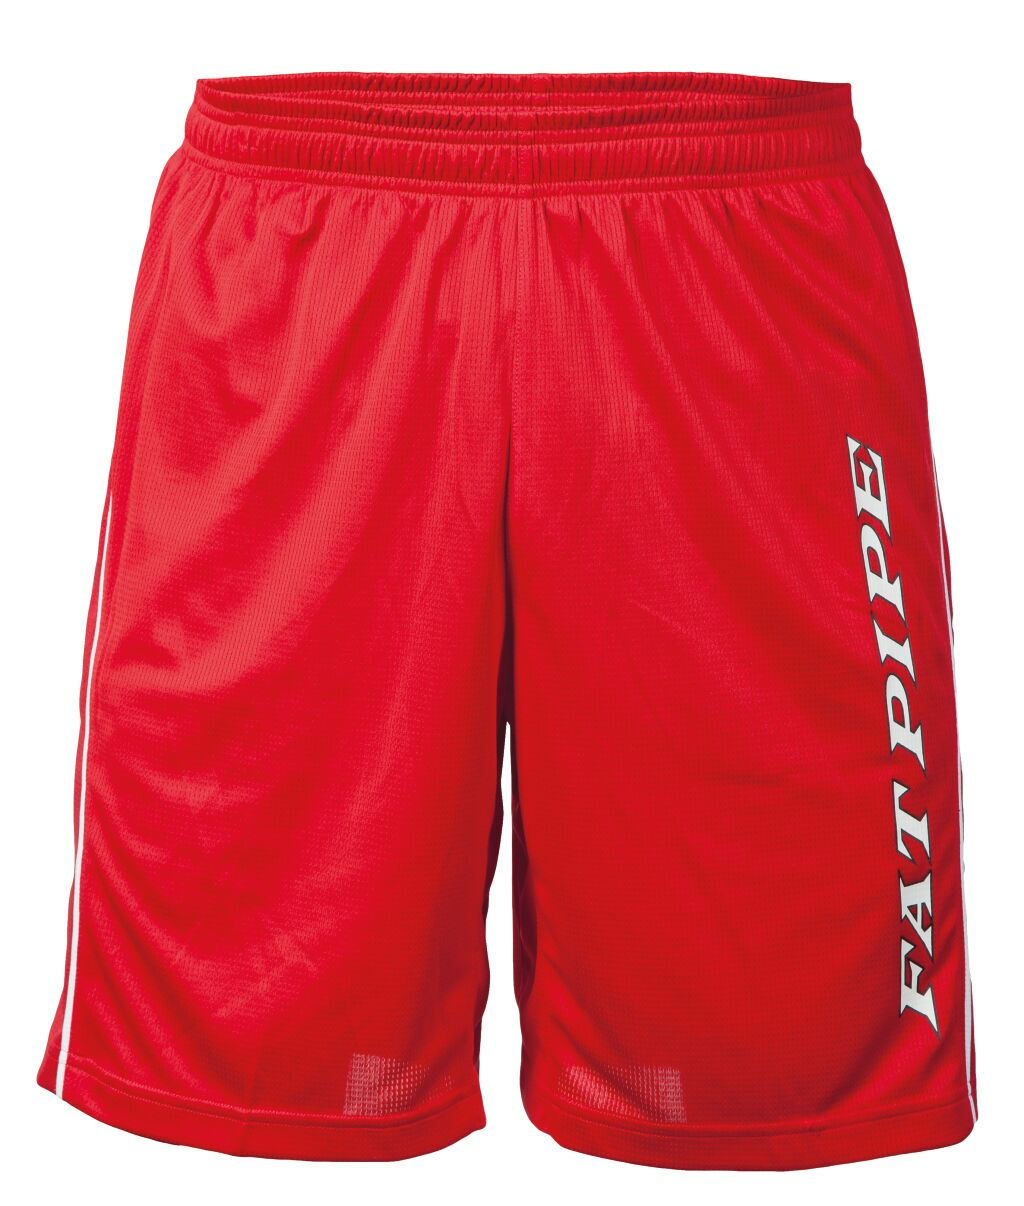 Fat Pipe Player's Shorts